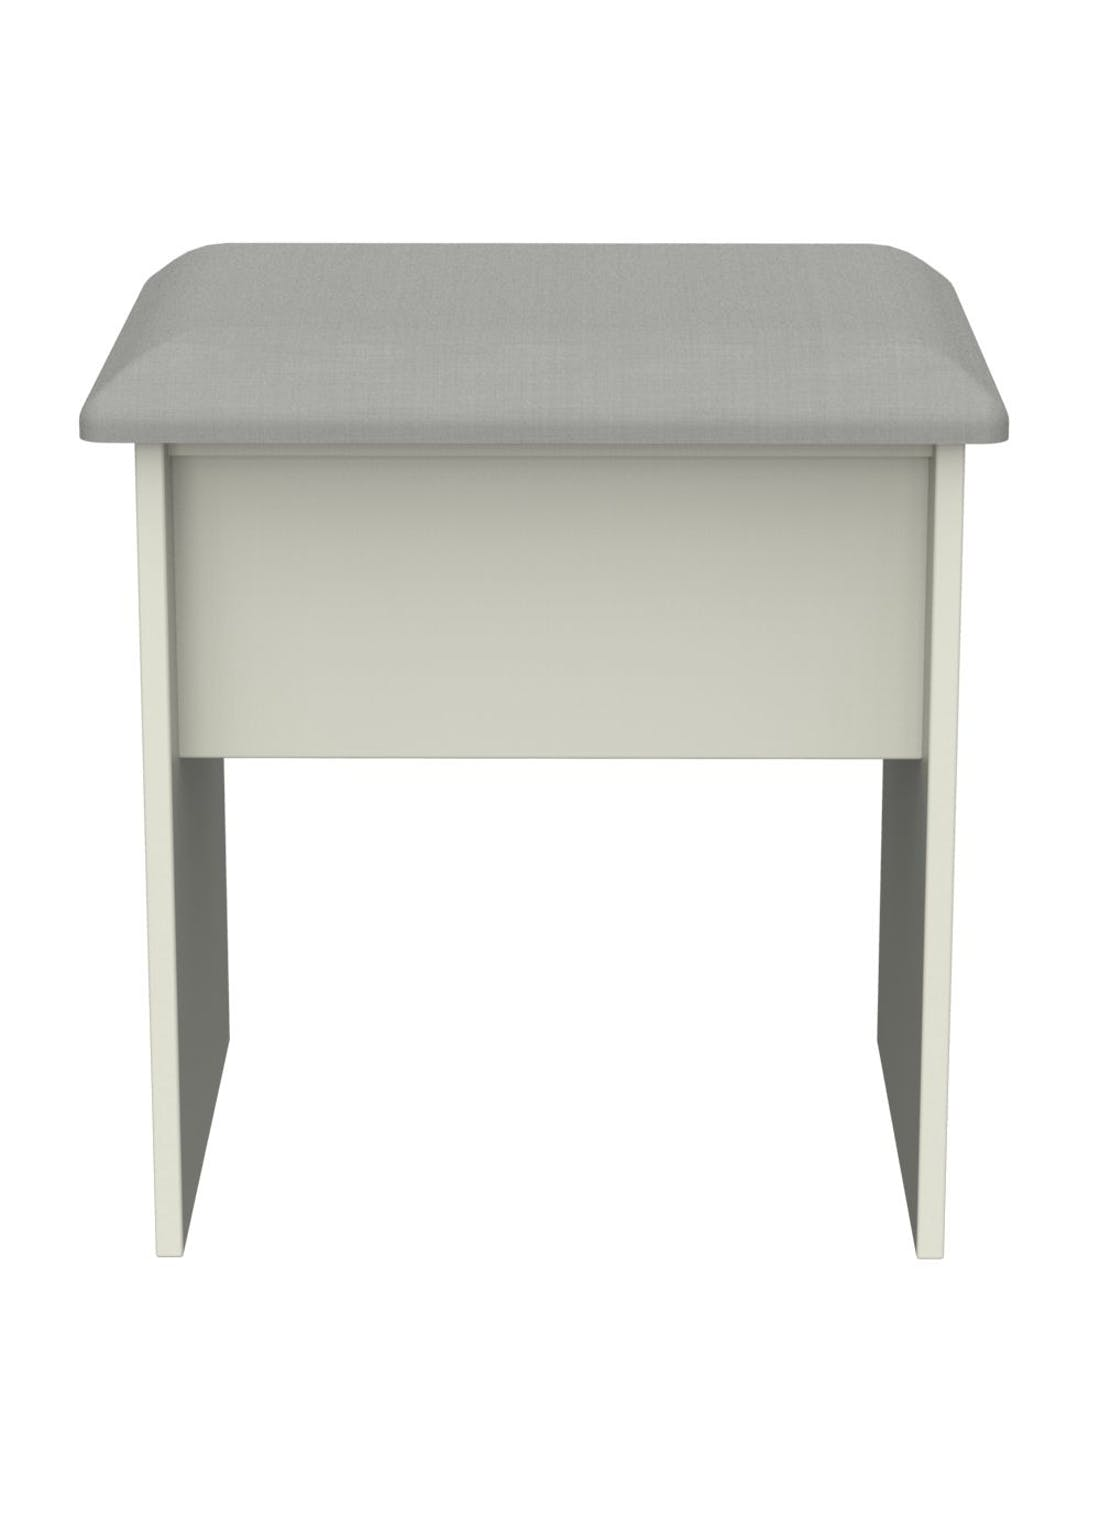 Swift Bordeaux Stool (51cm x 48cm x 37.5cm)